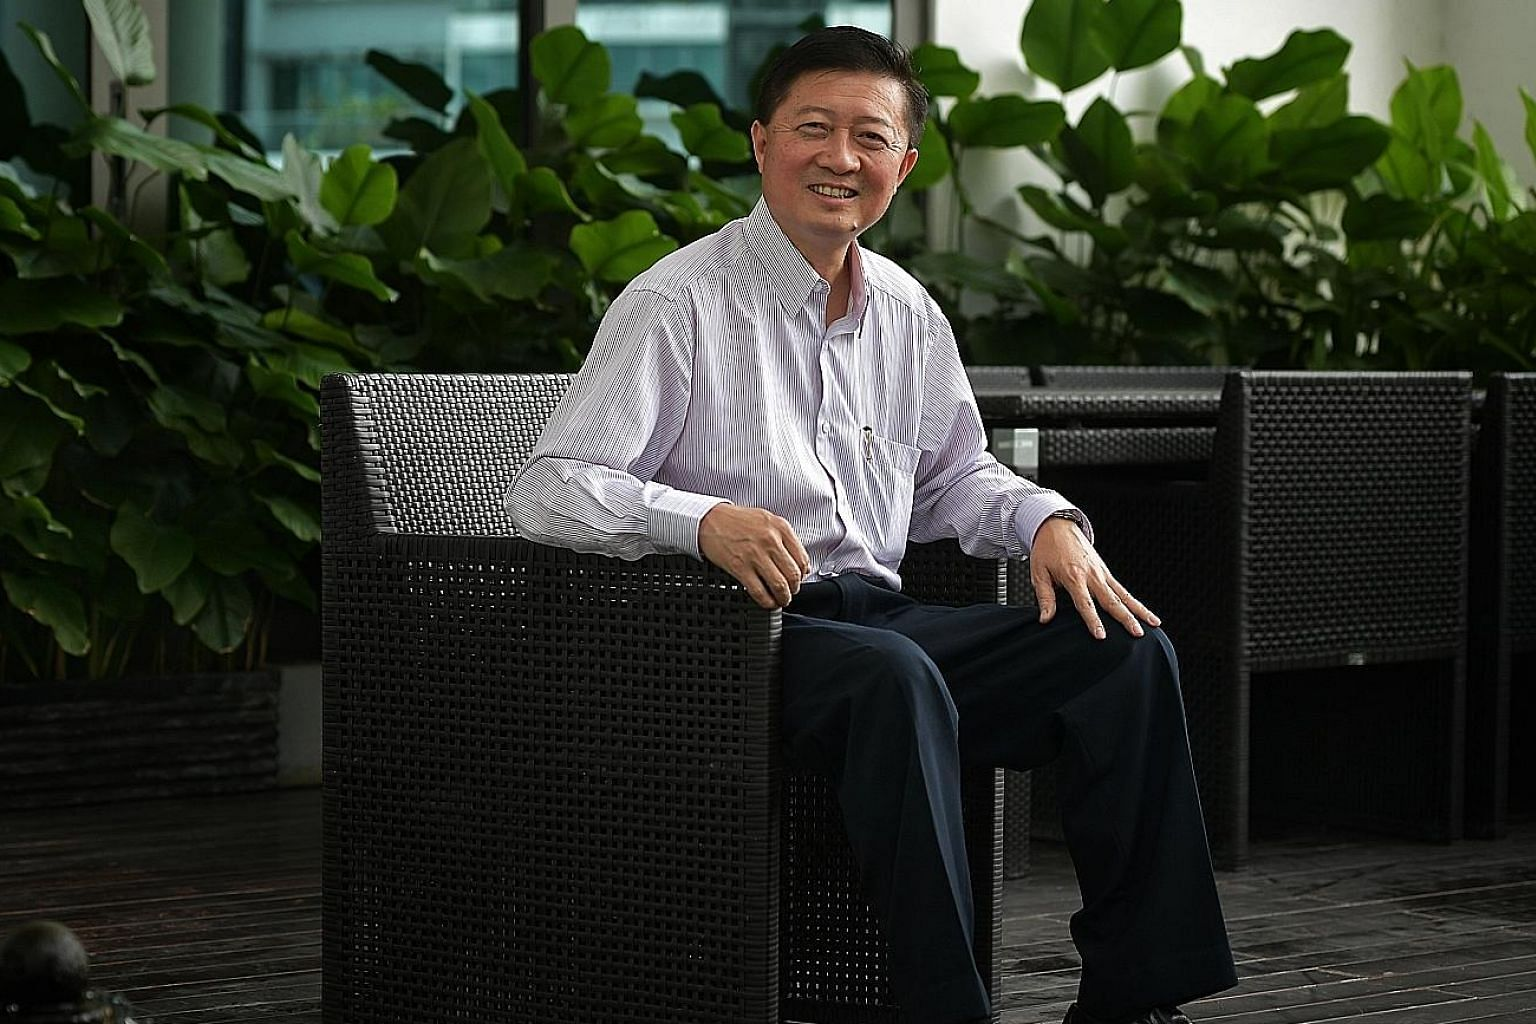 Food Empire's founder and executive chairman Tan Wang Cheow attributes the group's success to the support shown by its shareholders, management and staff, and the tenacity and adaptability of his team.